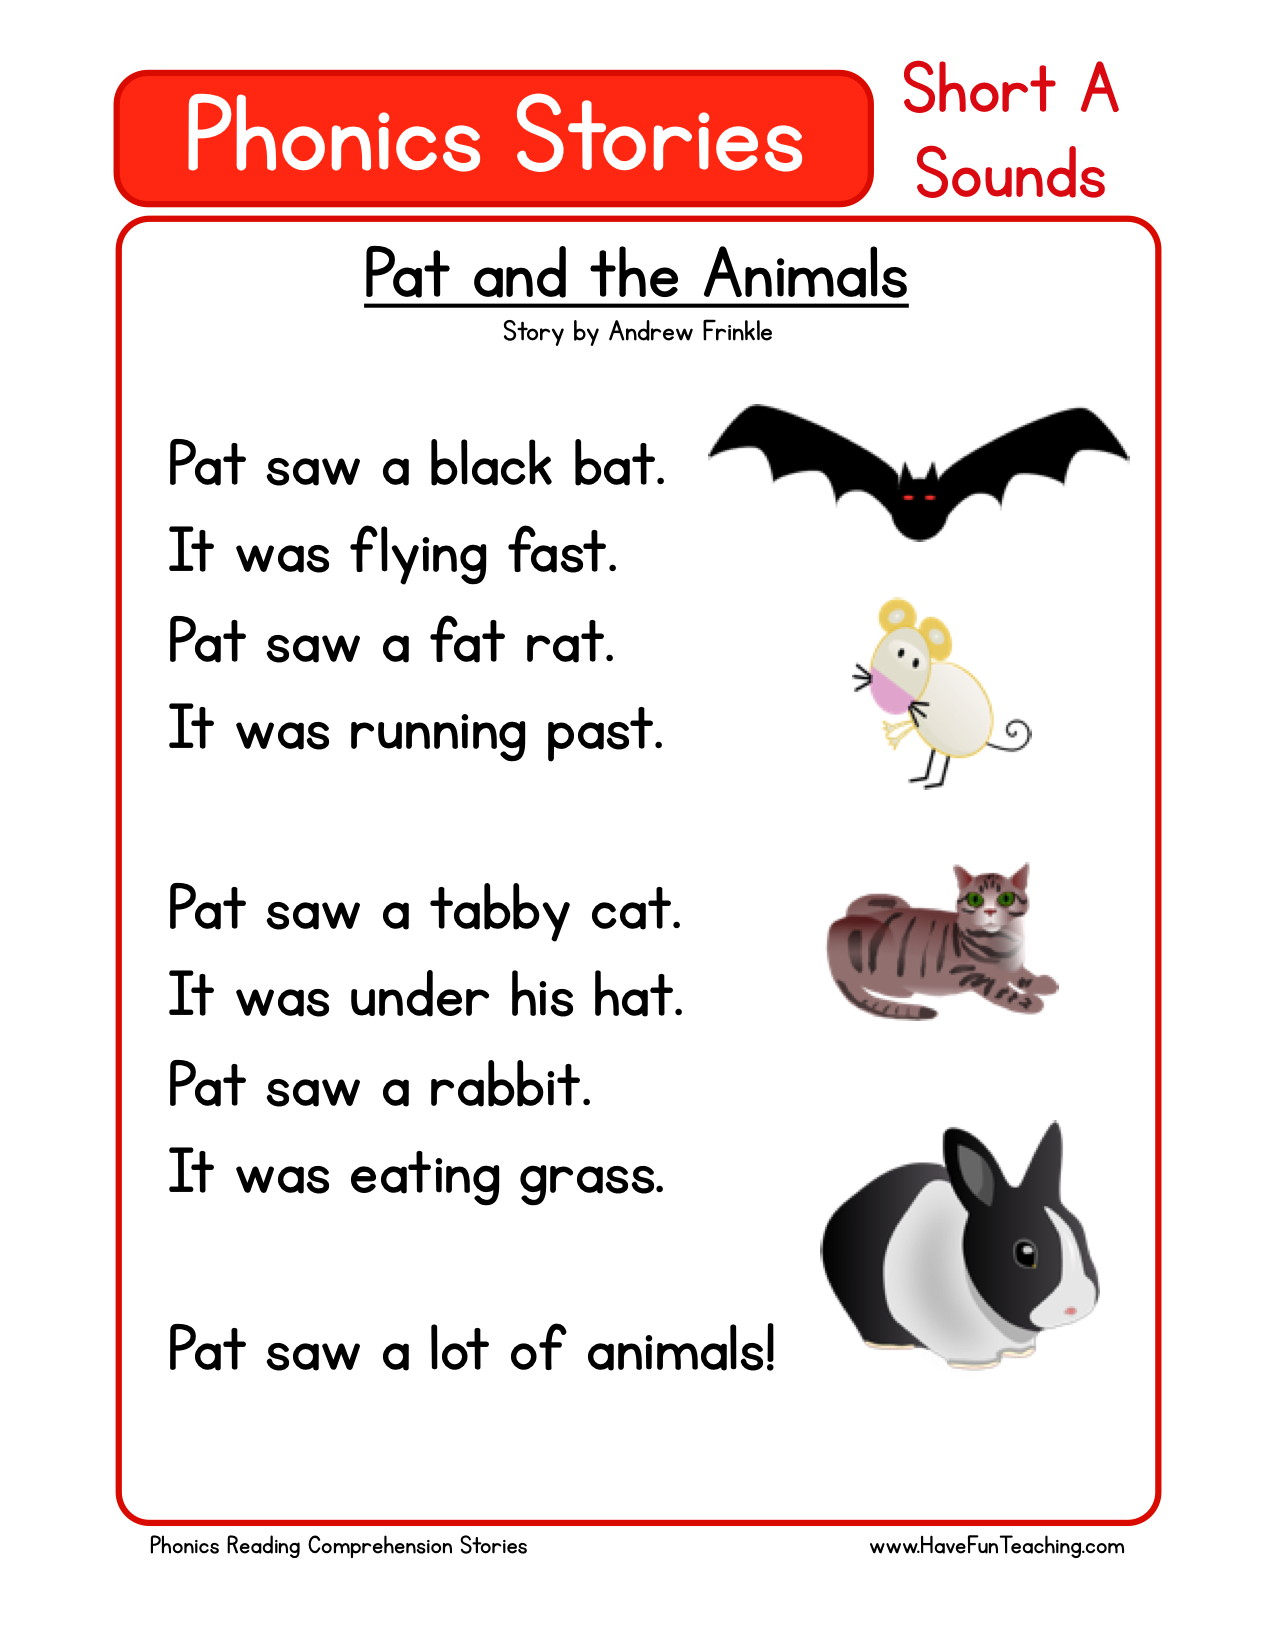 Worksheet Reading Comprehension For Preschool preschool reading comprehension worksheets download pat and the animals